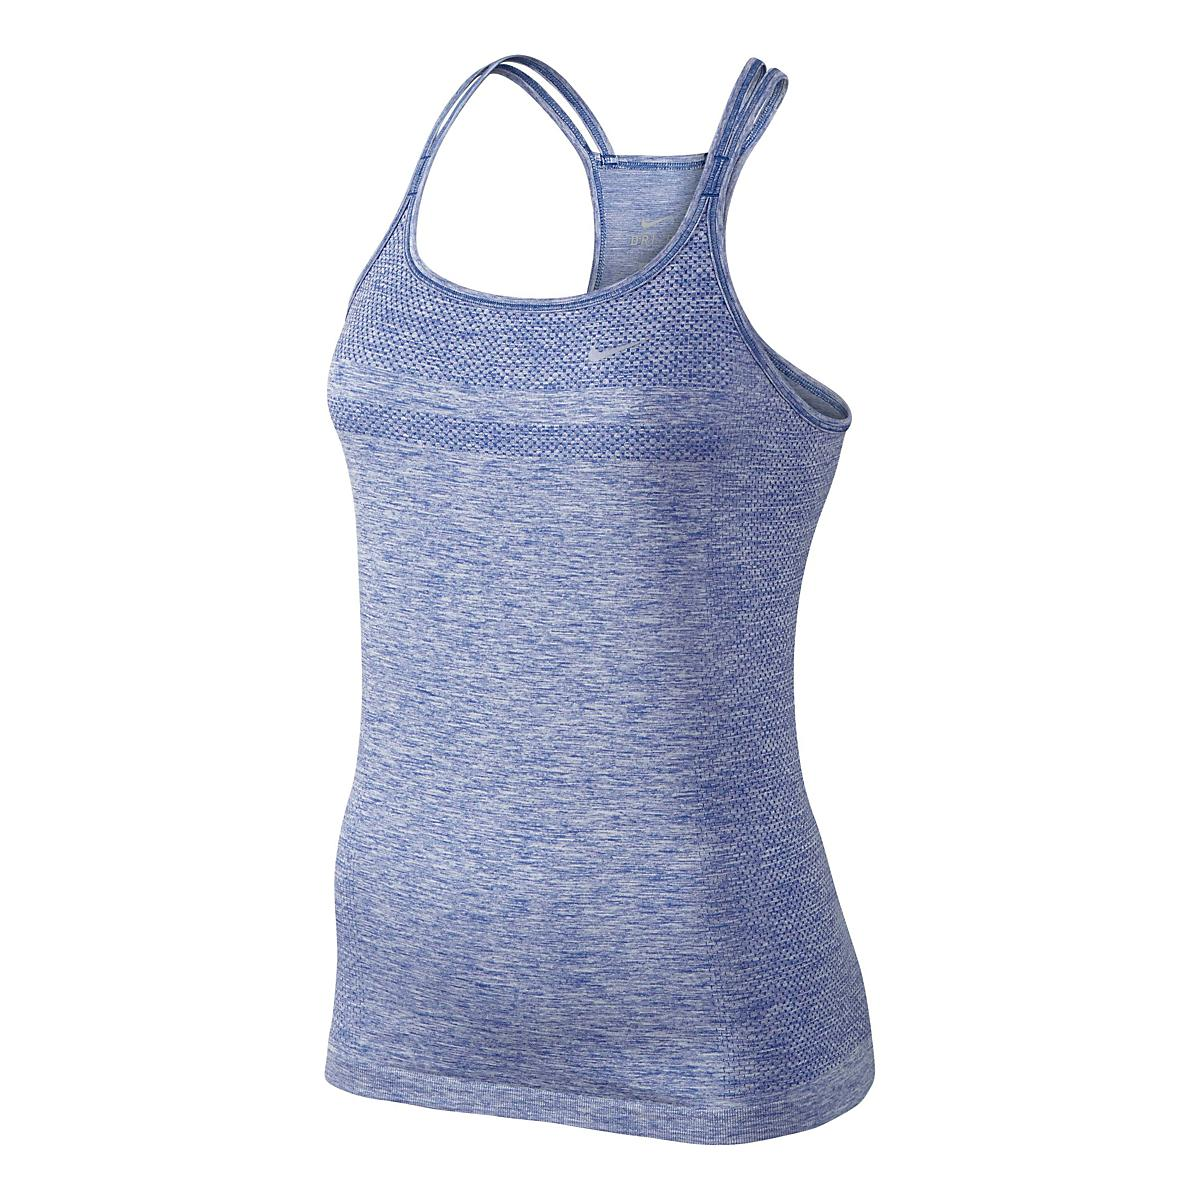 cheaper 554dd b51a6 Womens Nike Dri-Fit Knit Strappy Tanks Technical Top at Road Runner Sports